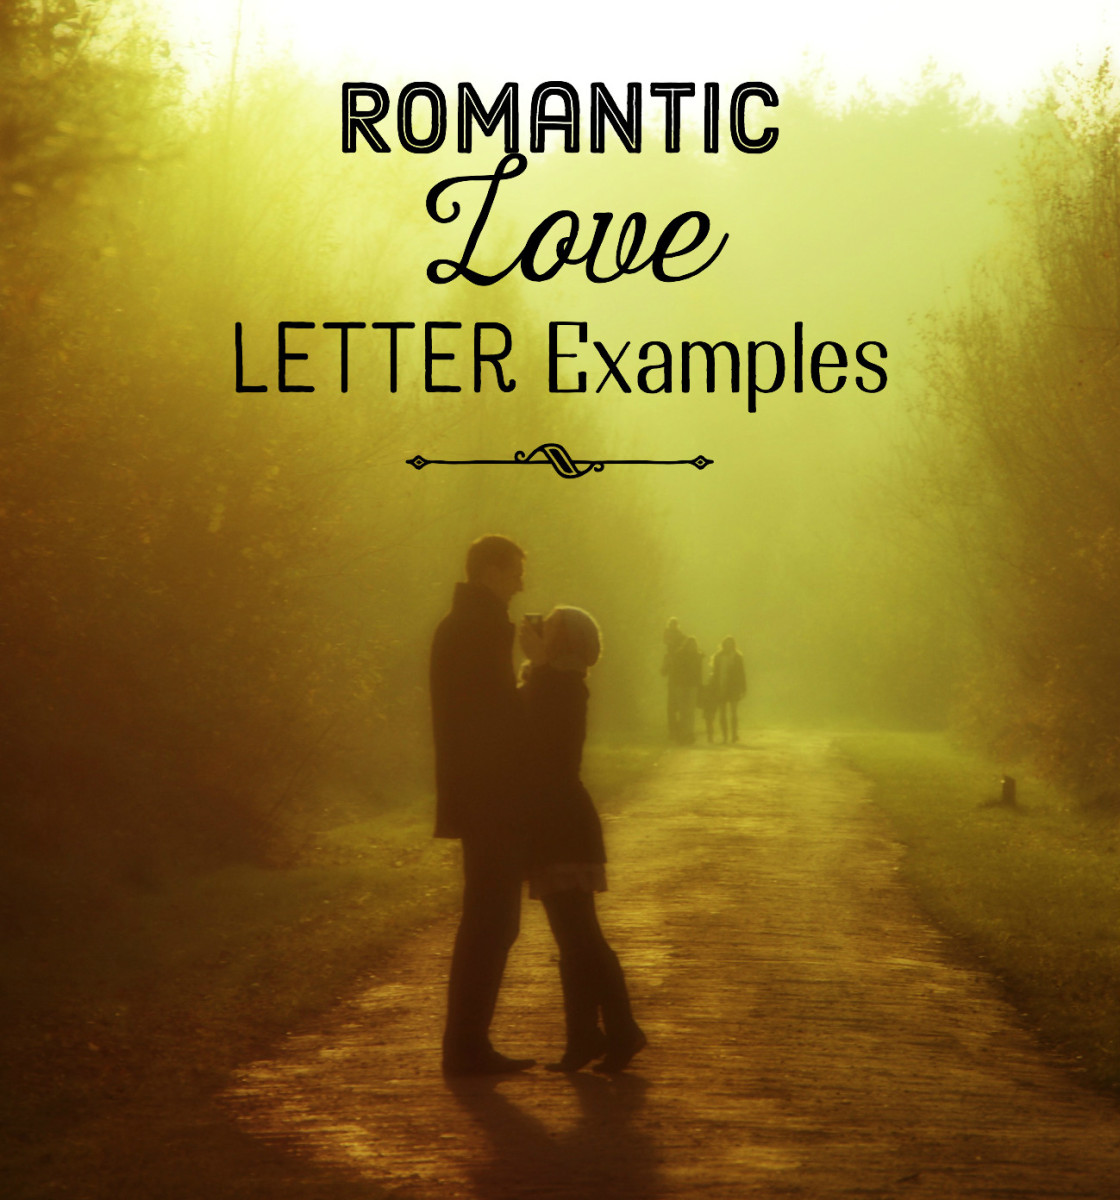 Cute and Romantic Love Letter Examples for Your Girlfriend